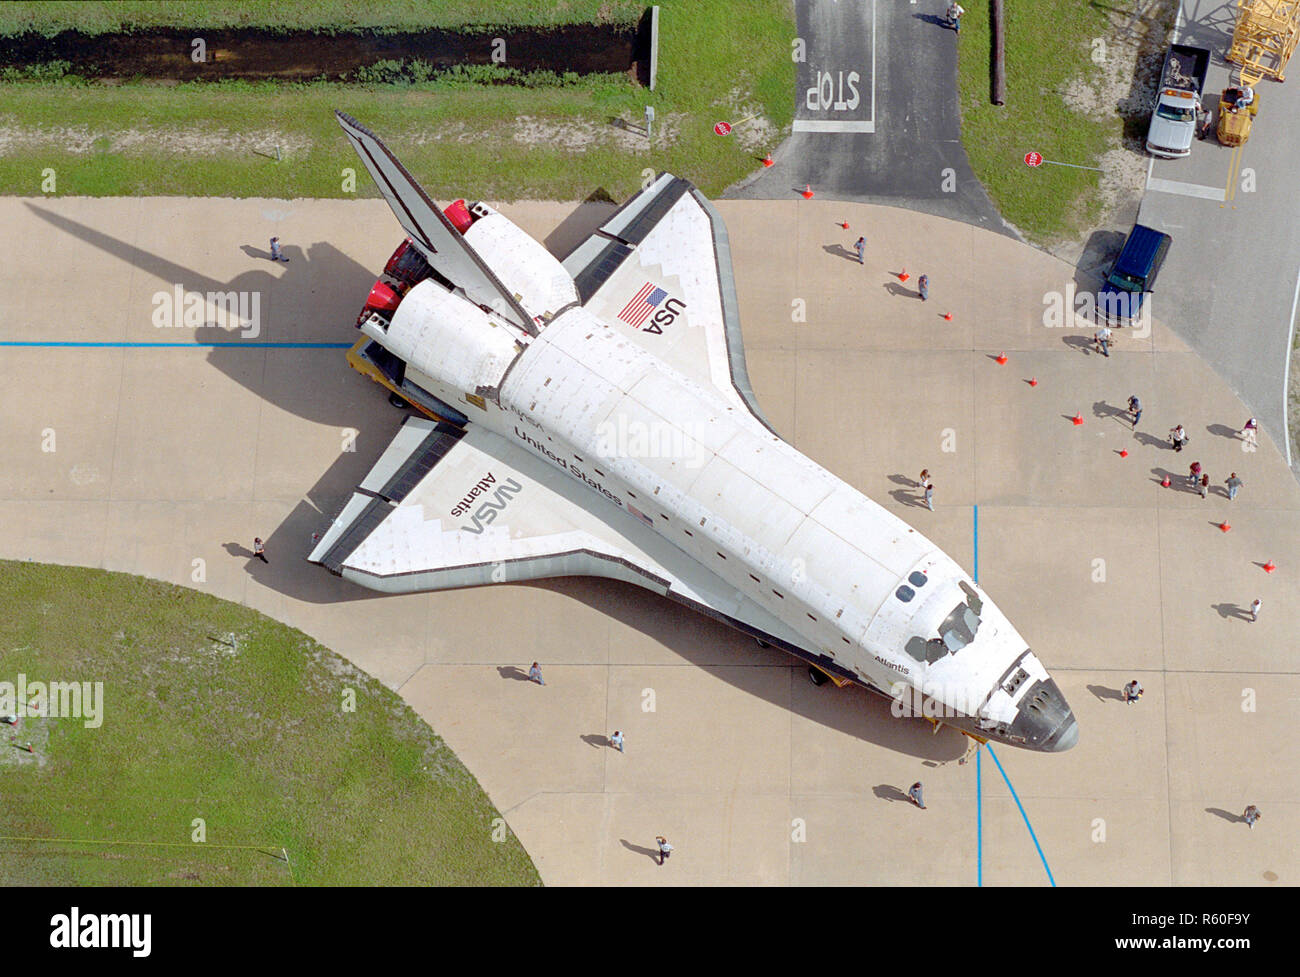 Carried atop an orbiter transporter, the Space Shuttle Orbiter Atlantis makes the short journey from Orbiter Processing Facility Bay 3 to the Vehicle  - Stock Image